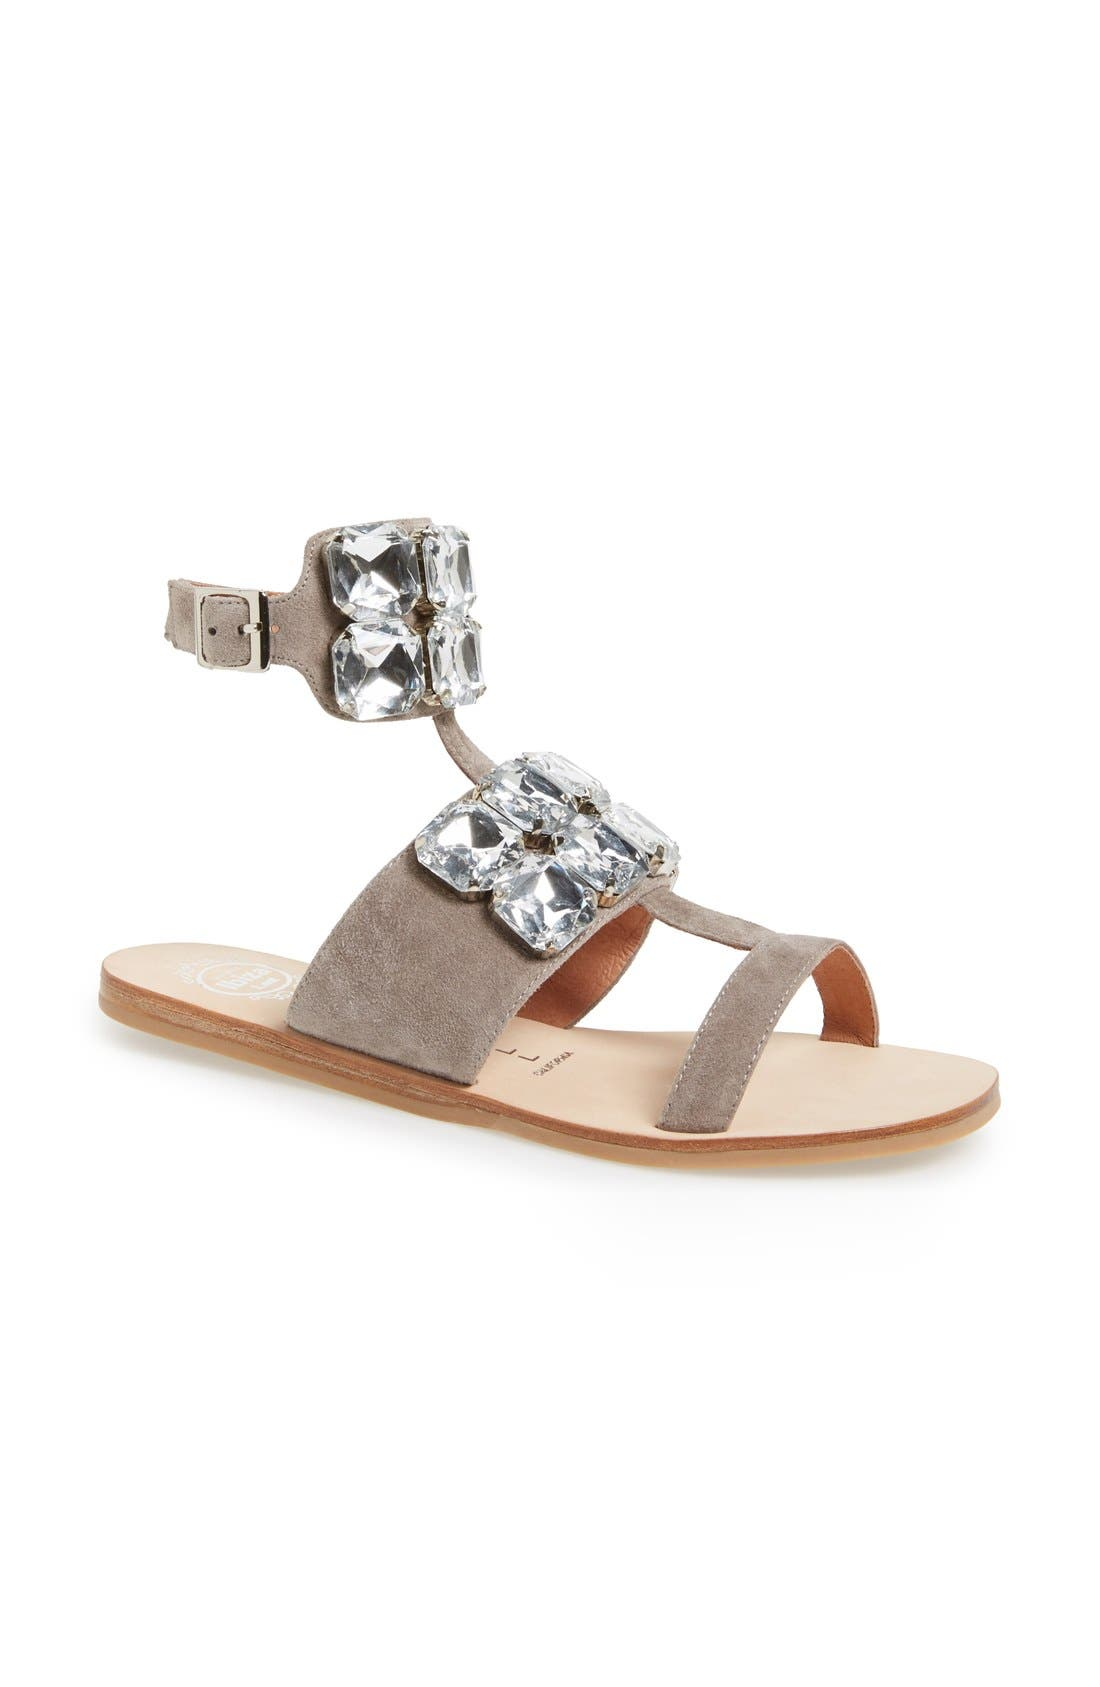 JEFFREY CAMPBELL 'Sabita' Jeweled Suede Ankle Strap Sandal, Main, color, 060